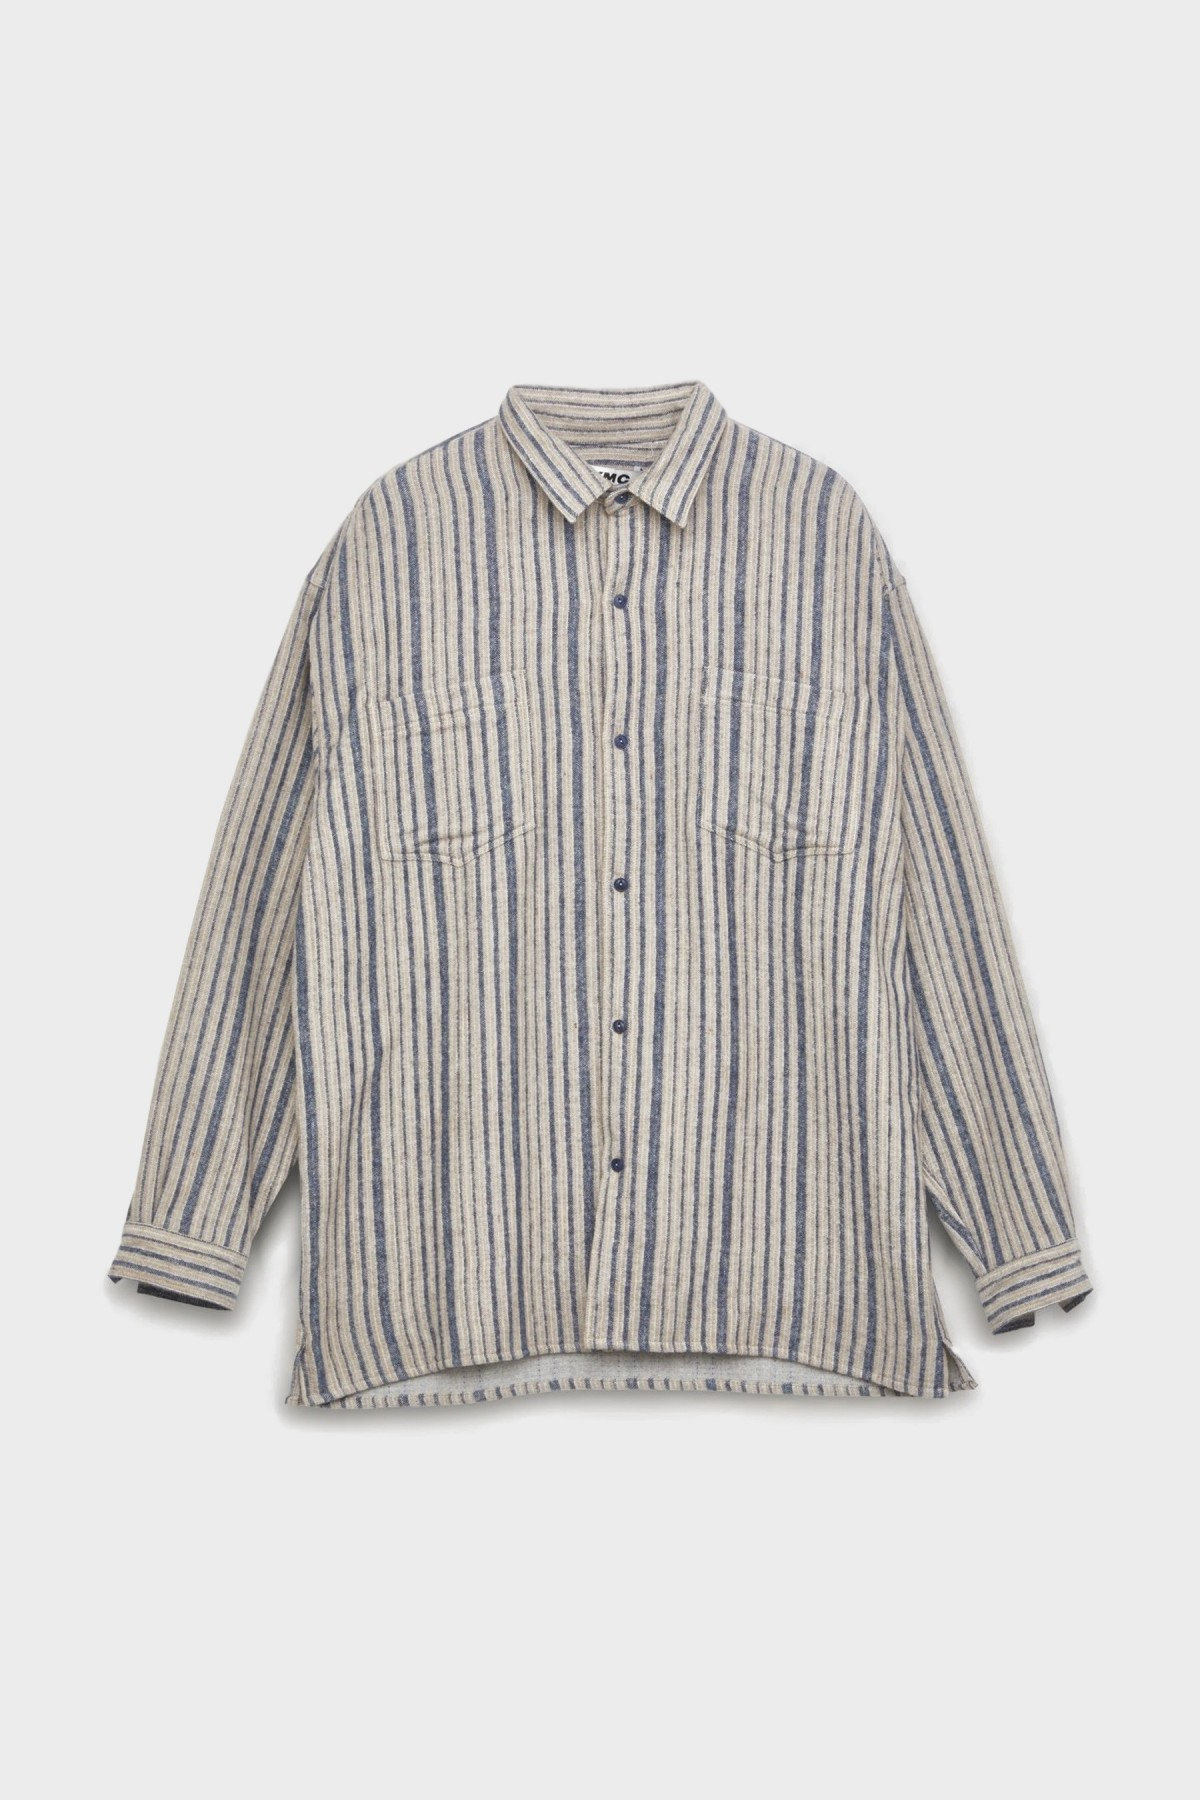 YMC You Must Create Andre Shirt in Blue Brown